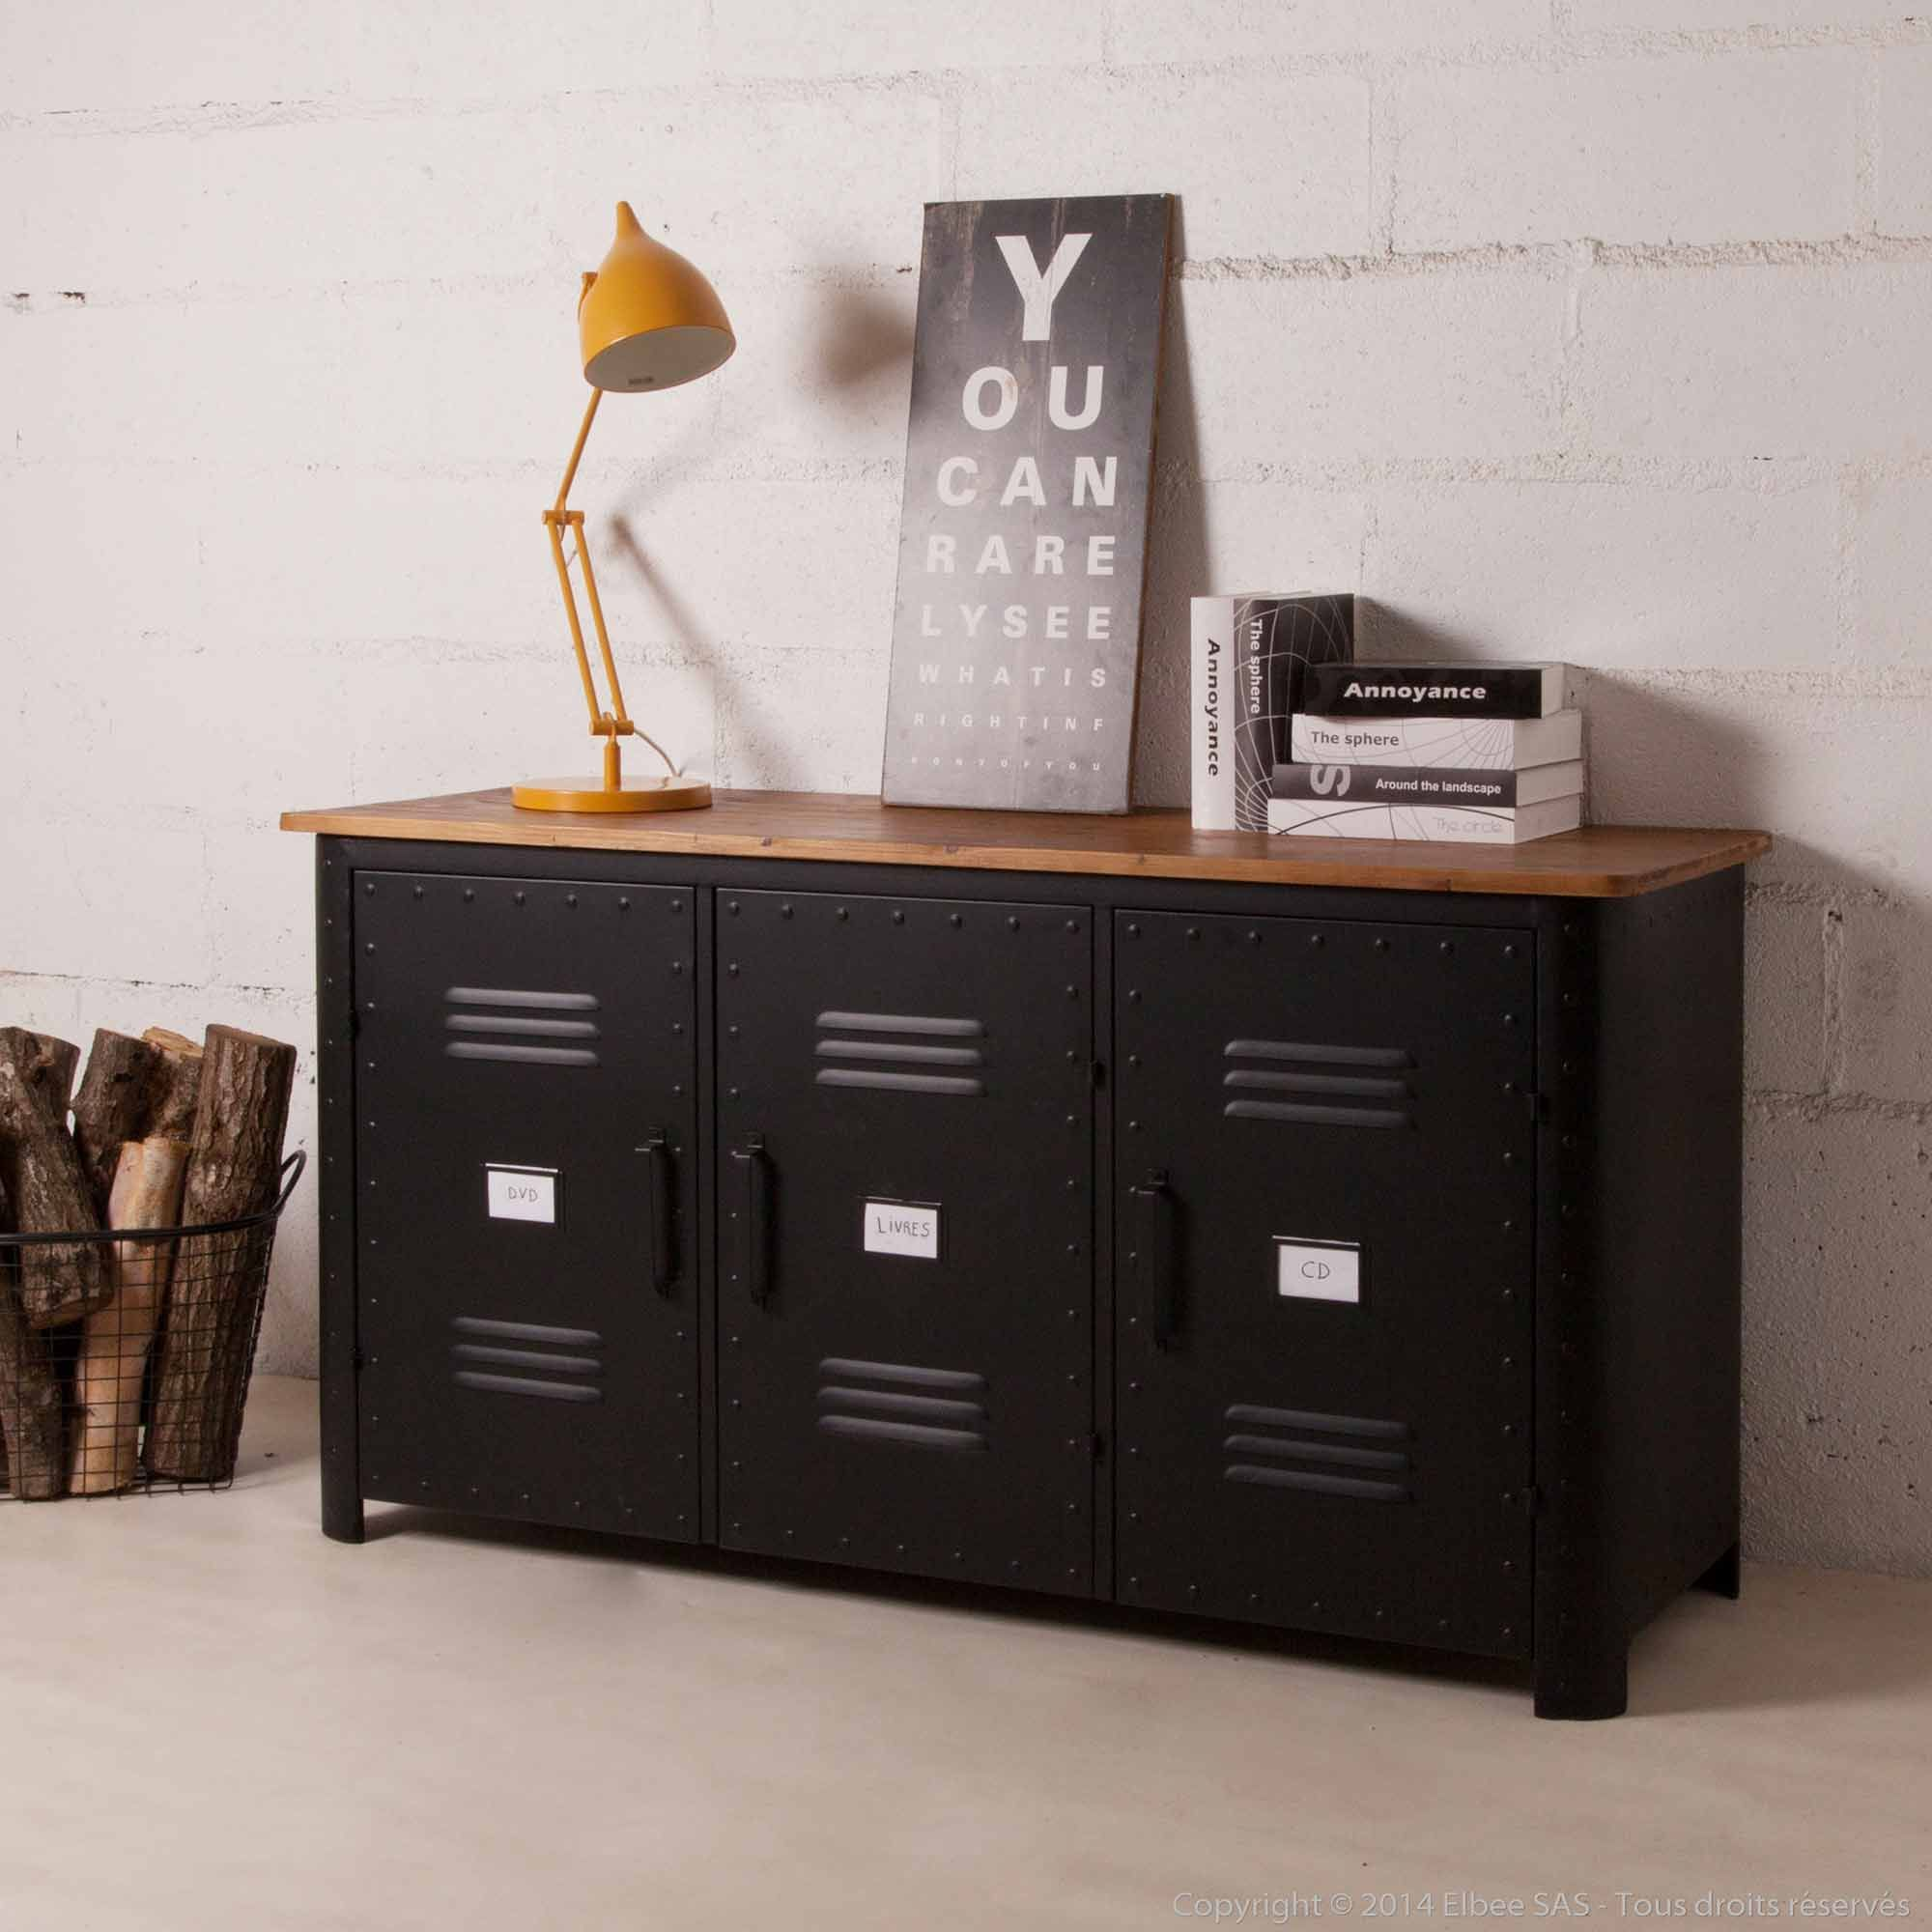 Buffet Bas Metal Et Bois Casier - Awesome Buffet En Metal Ideas Joshkrajcik Us Joshkrajcik Us[mjhdah]https://www.massaya.fr/1694-thickbox_default/buffet-bas-industriel-bois-et-metal-2m25.jpg